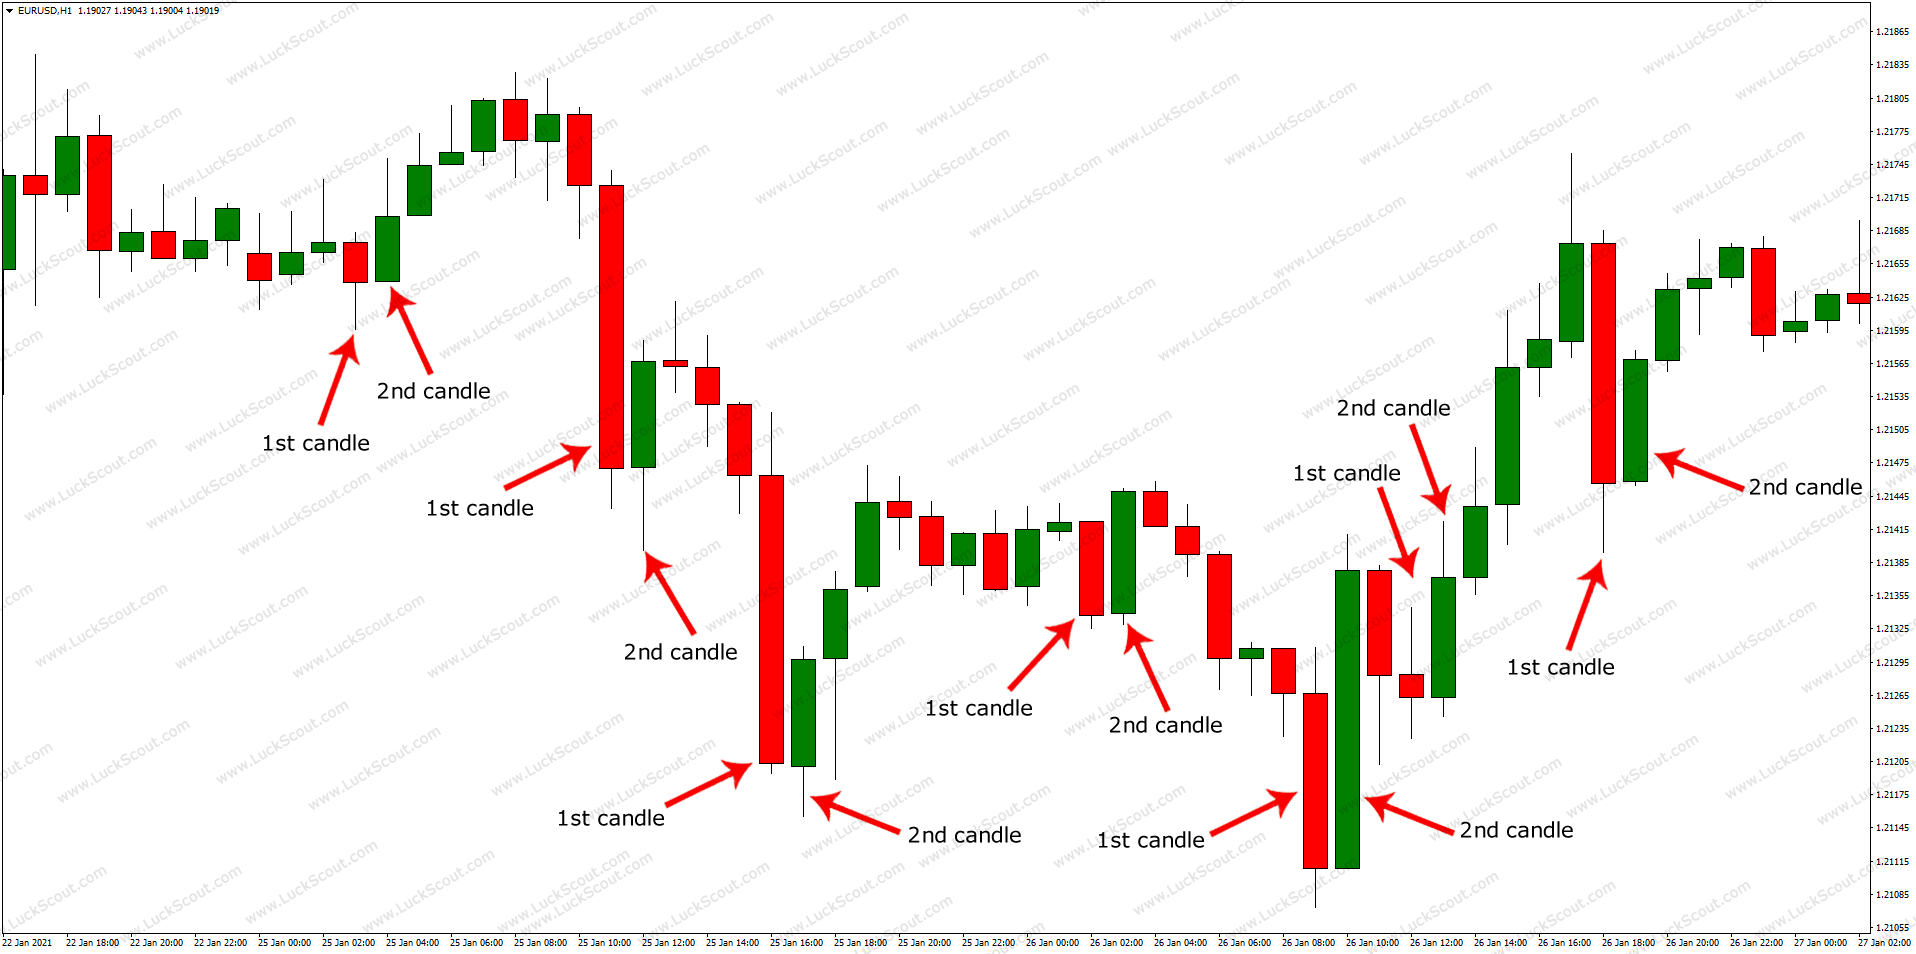 Bullish Engulfing Candlesticks Patterns